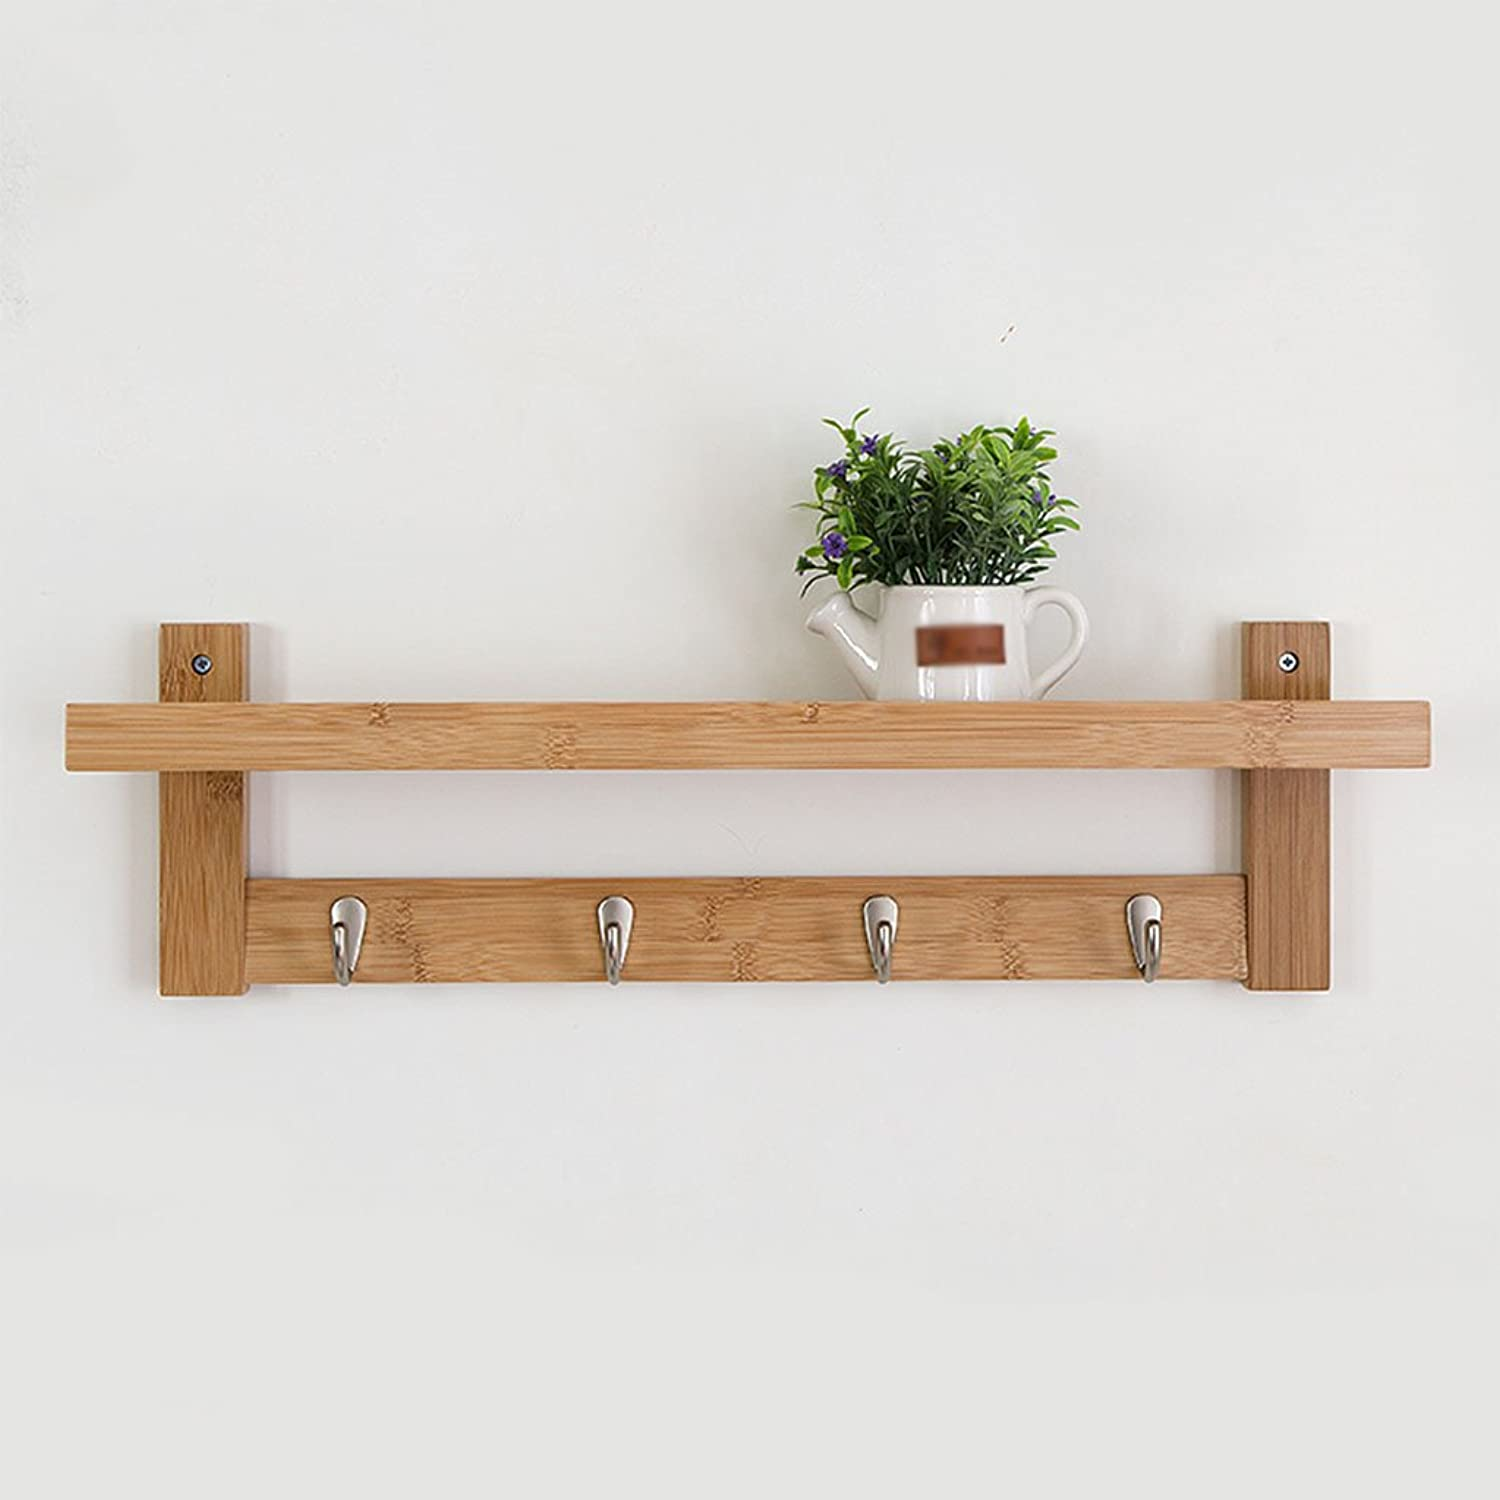 CSQ Solid Wood Hangers, Creative Wall Hanging Bedroom Wall Clothes Hook Hanger Hook up Shelf Wall Hanging On The Wall Coat Rack Length 61-87CM (Size   61  12  8CM)